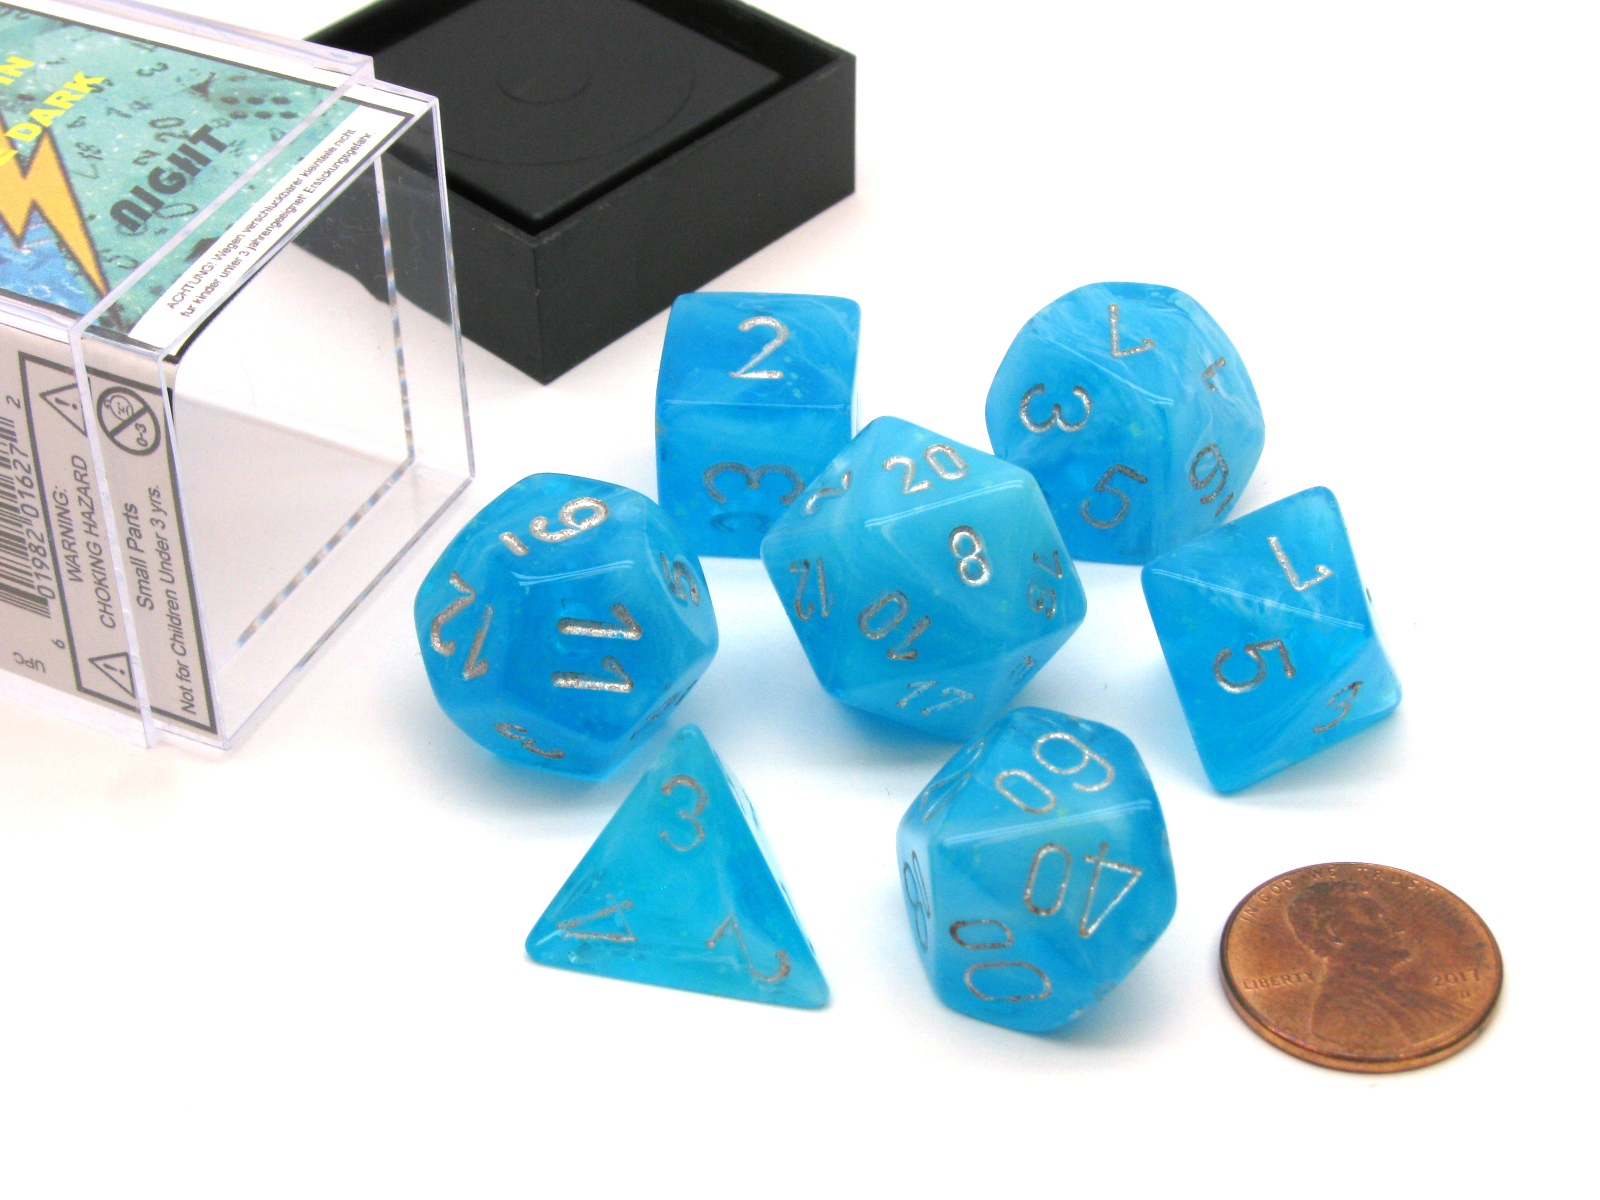 Polyhedral 7 Die Luminary Chessex Glow In The Dark Dice Set Sky